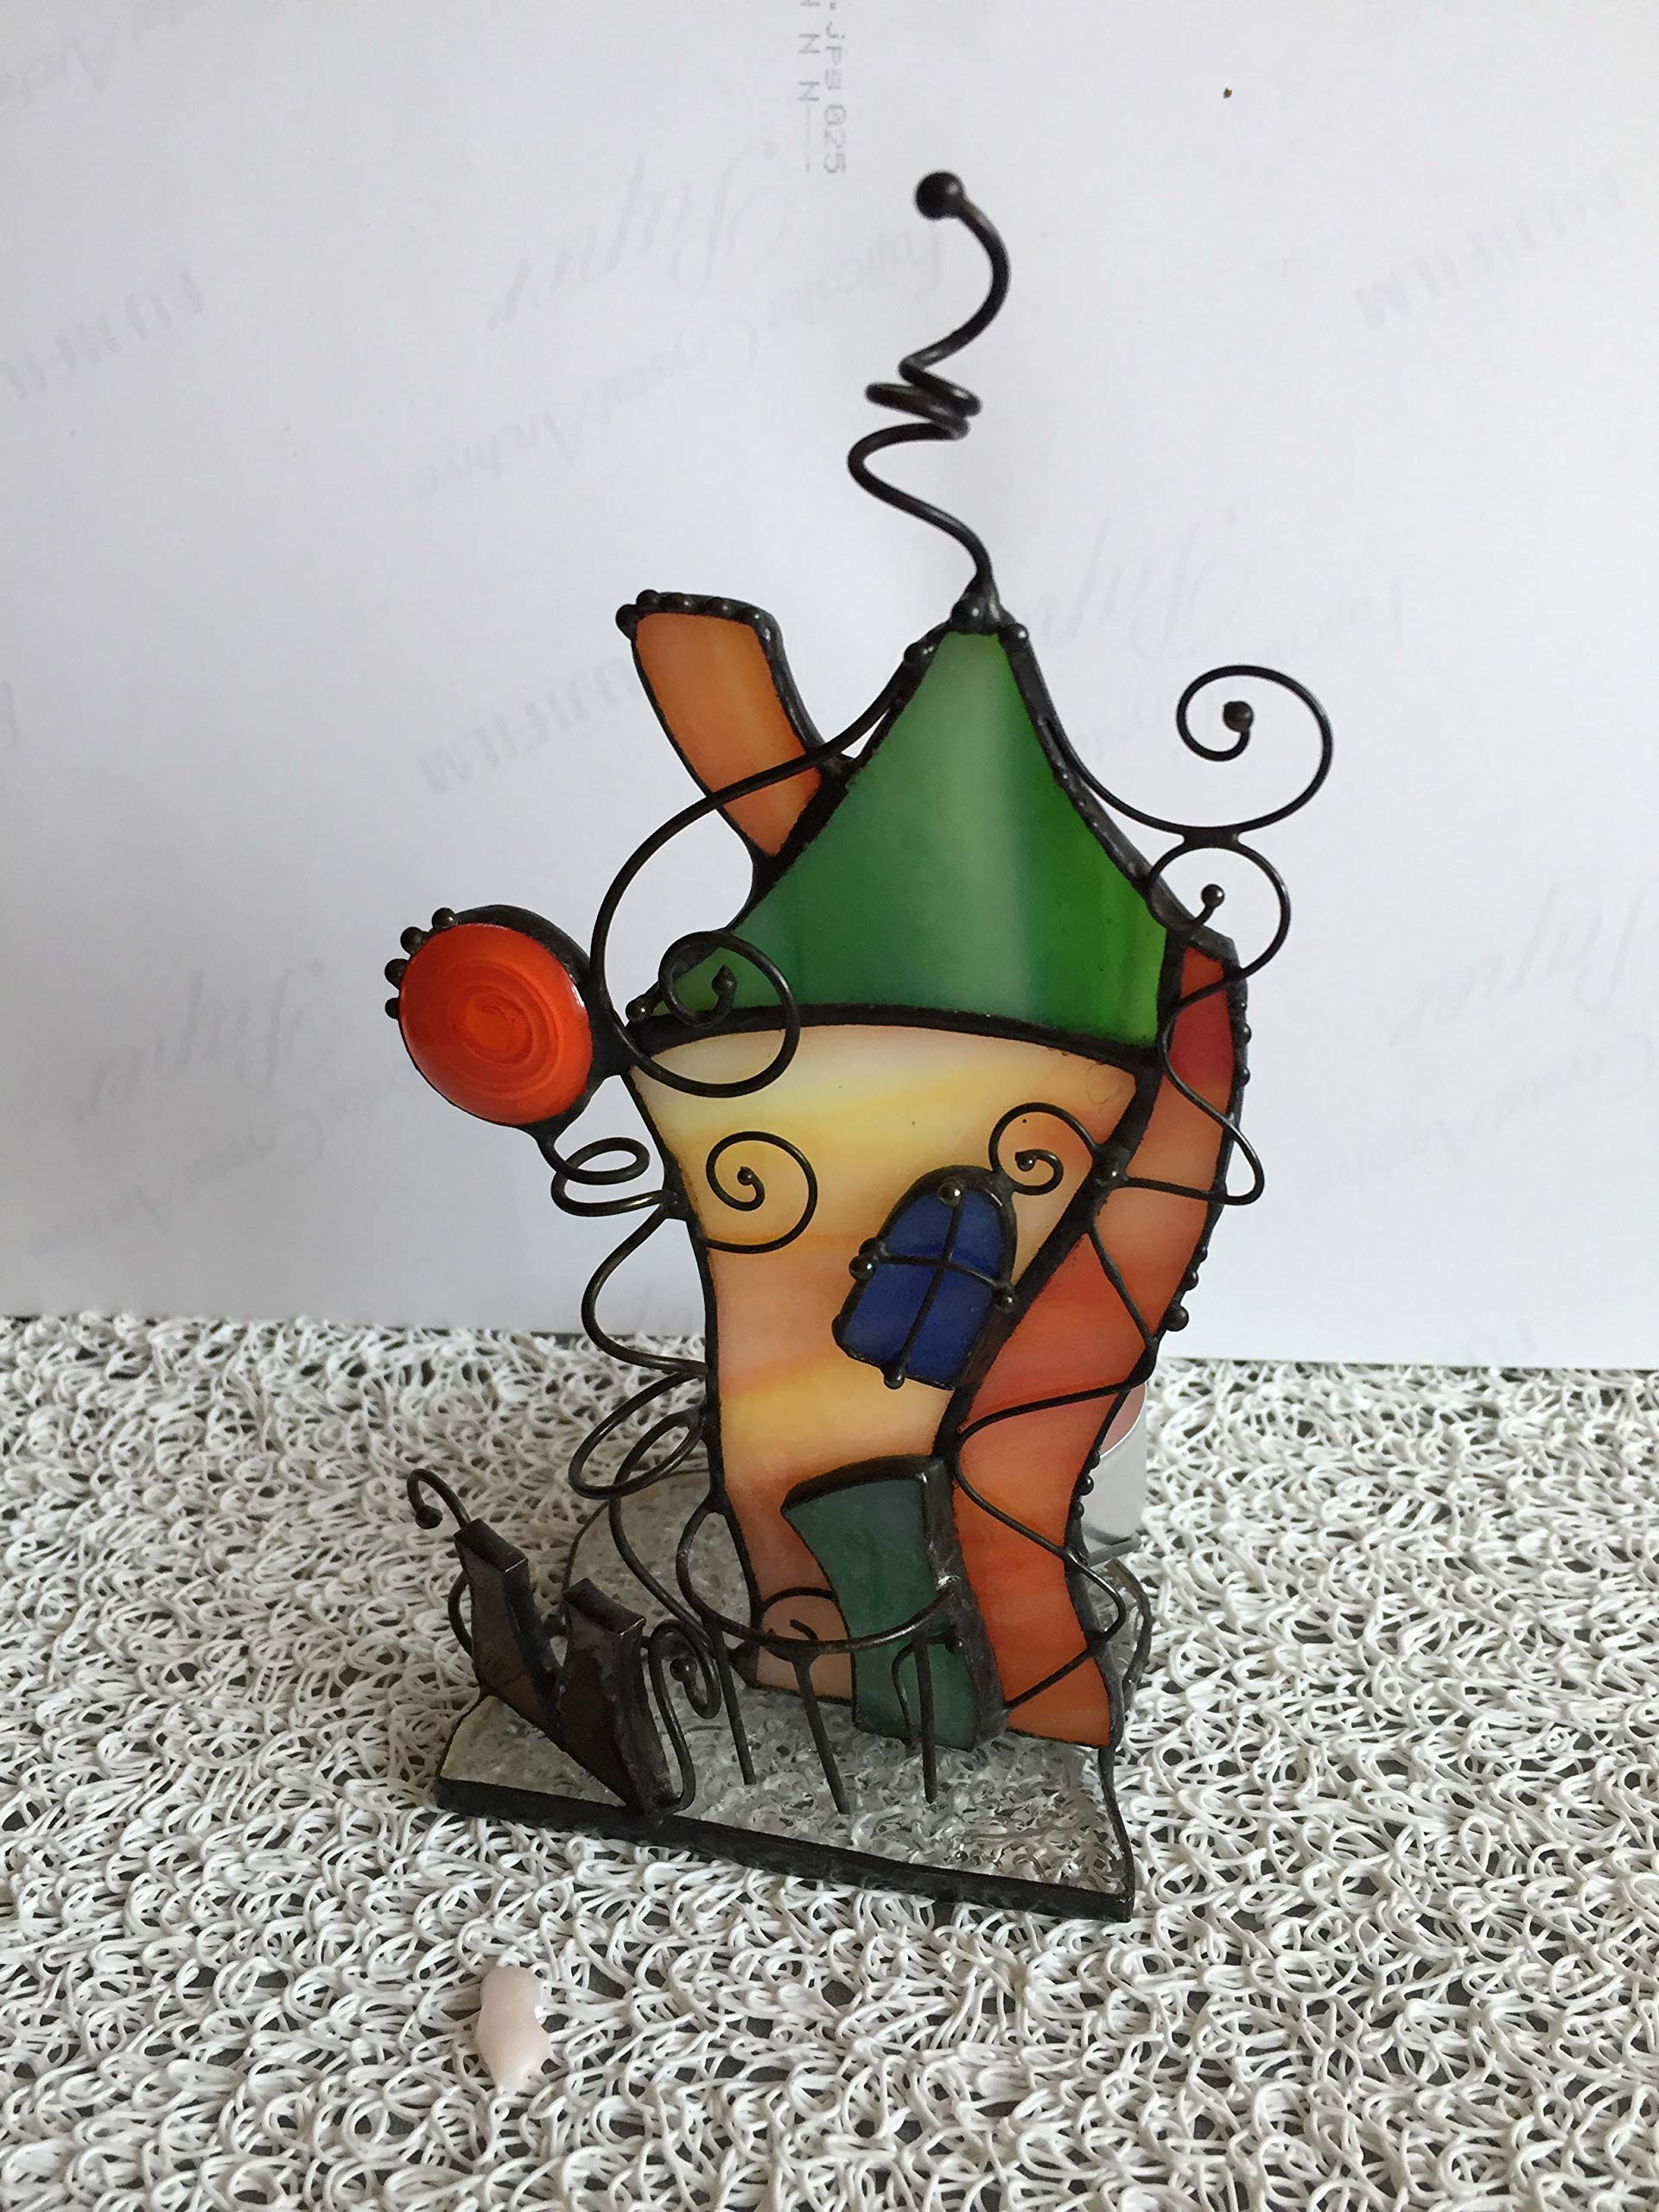 Christmas House New Year's House Candle Holder Artglass House Leprechauns Glass House Decor Tiffany Stained Glass Green Home Stained Glass Art Tiffany Glass Gift Handmade Art Thanksgiving Day Gifts